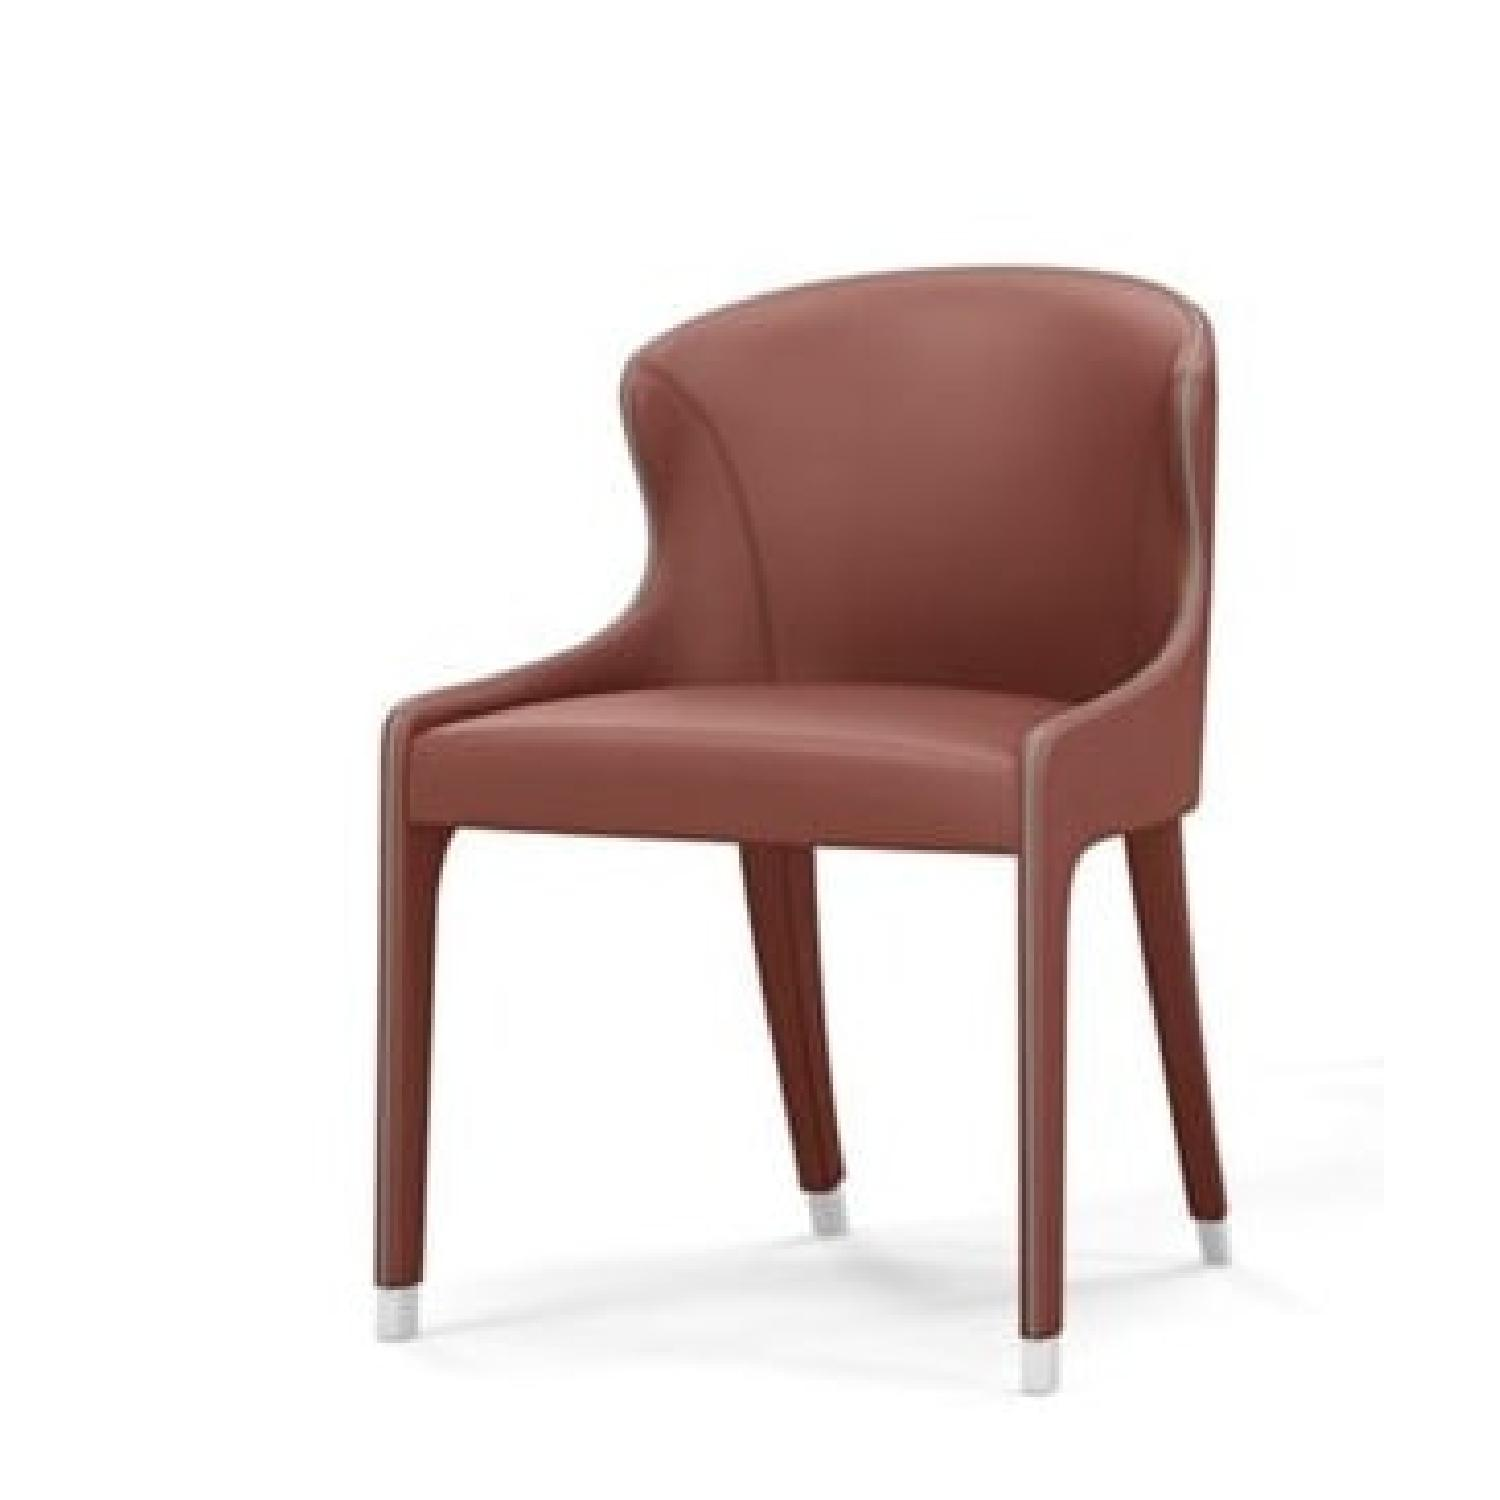 Roche Bobois Steeple Chairs